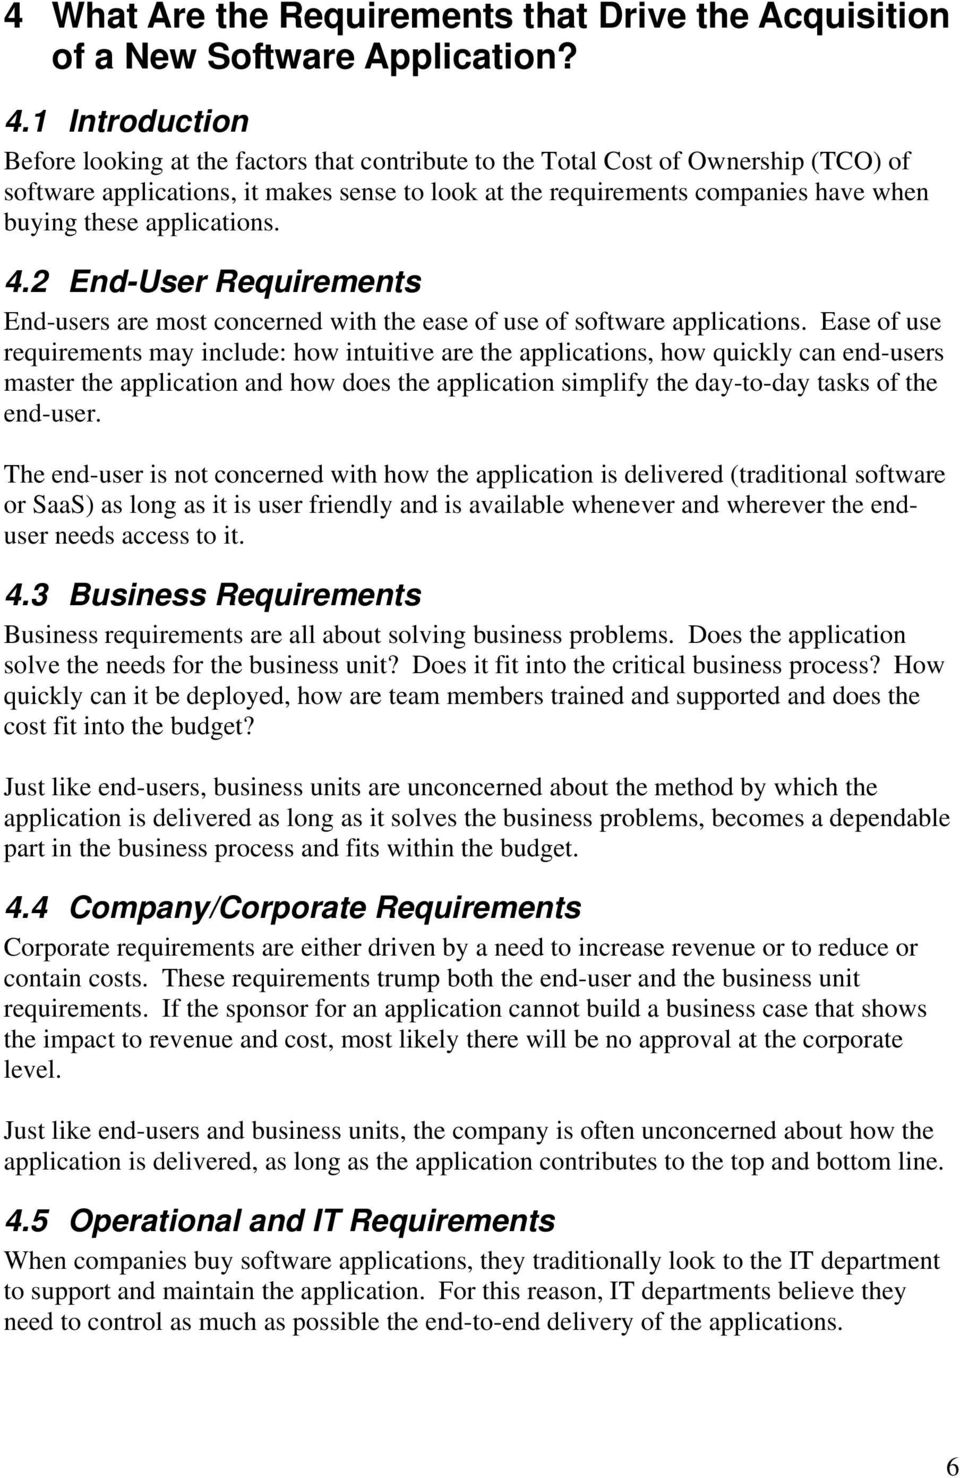 applications. 4.2 End-User Requirements End-users are most concerned with the ease of use of software applications.